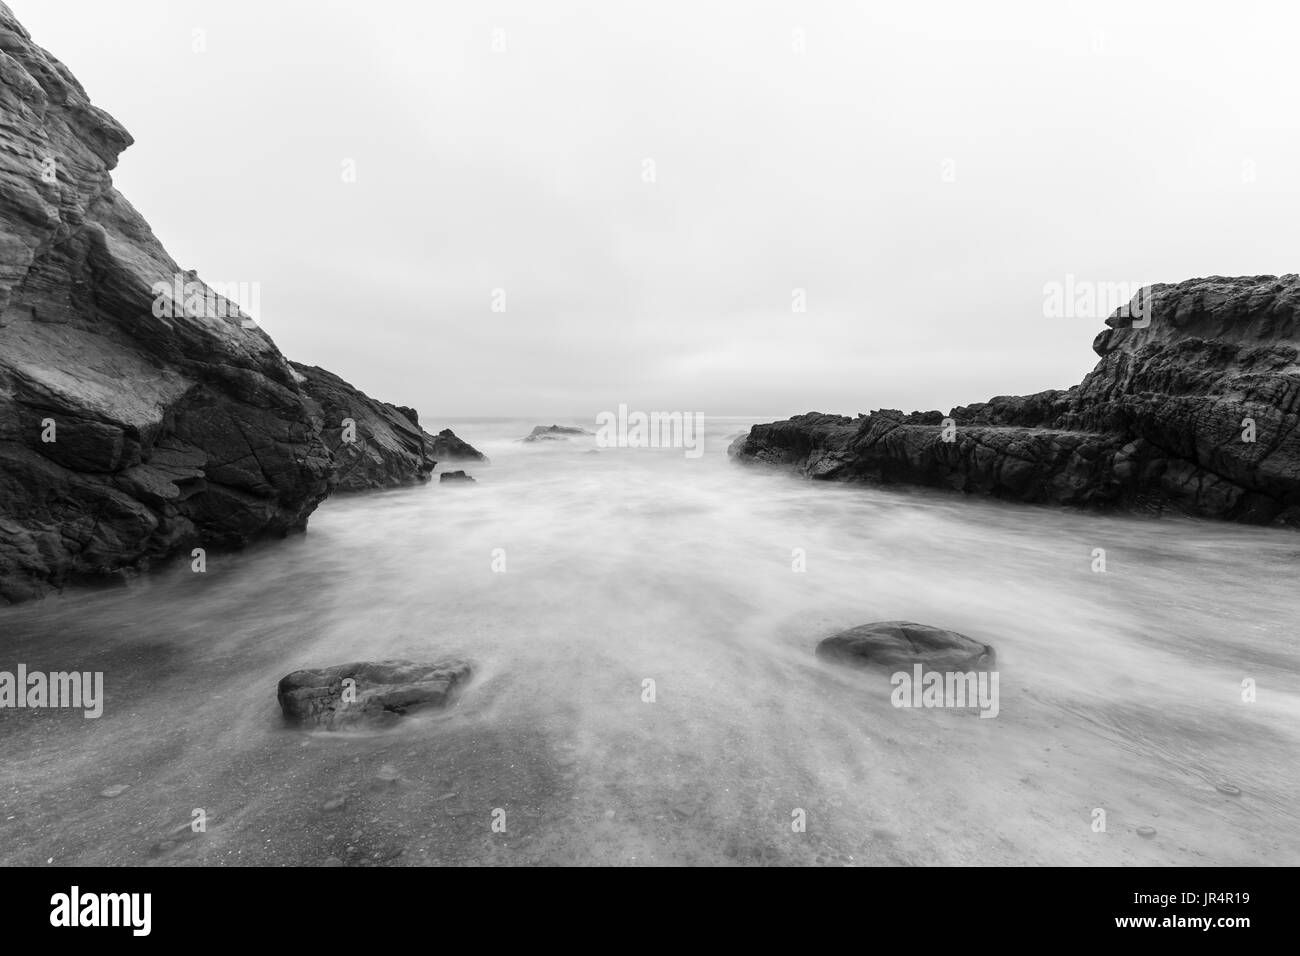 Rocky Malibu beach with motion blur water in Black and White. - Stock Image